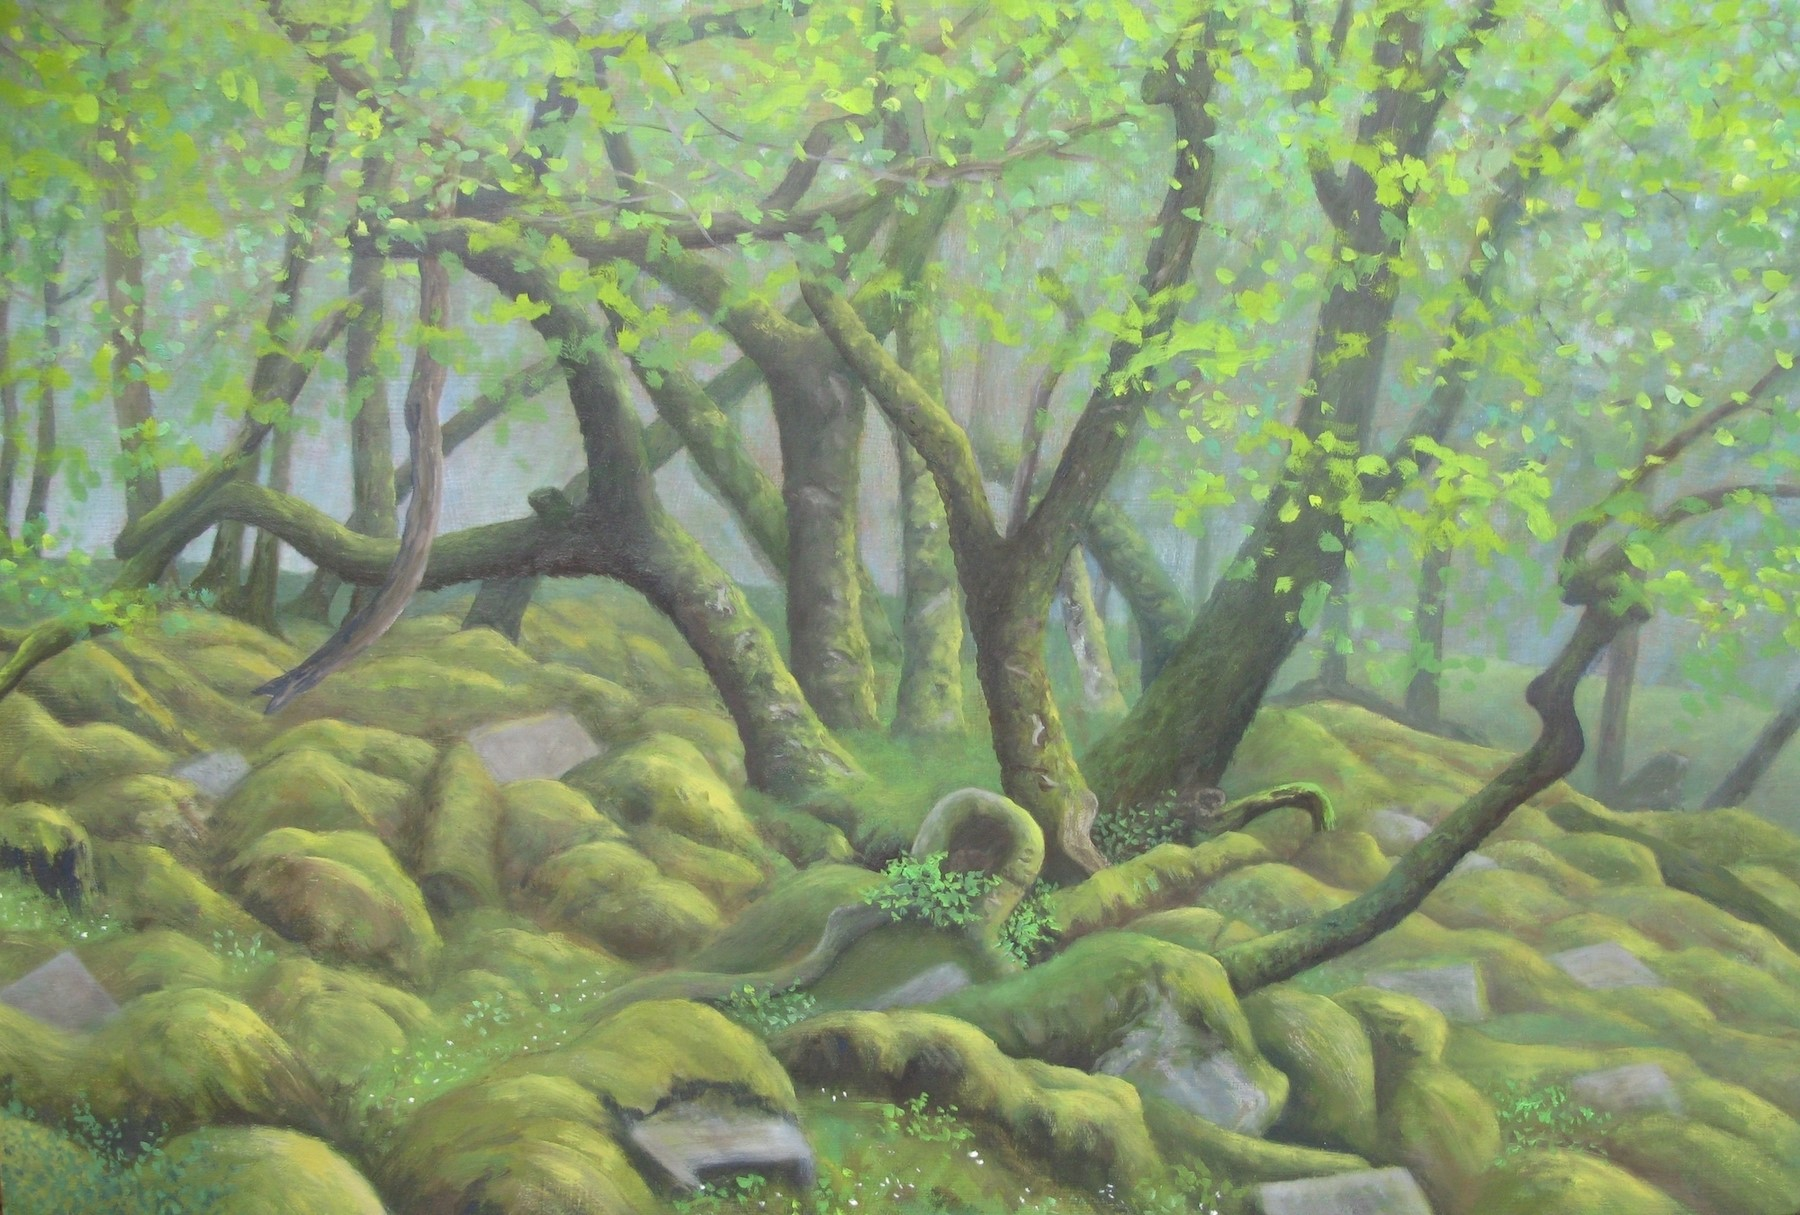 A rocky ground with tree trunks and green leaves growing upwards